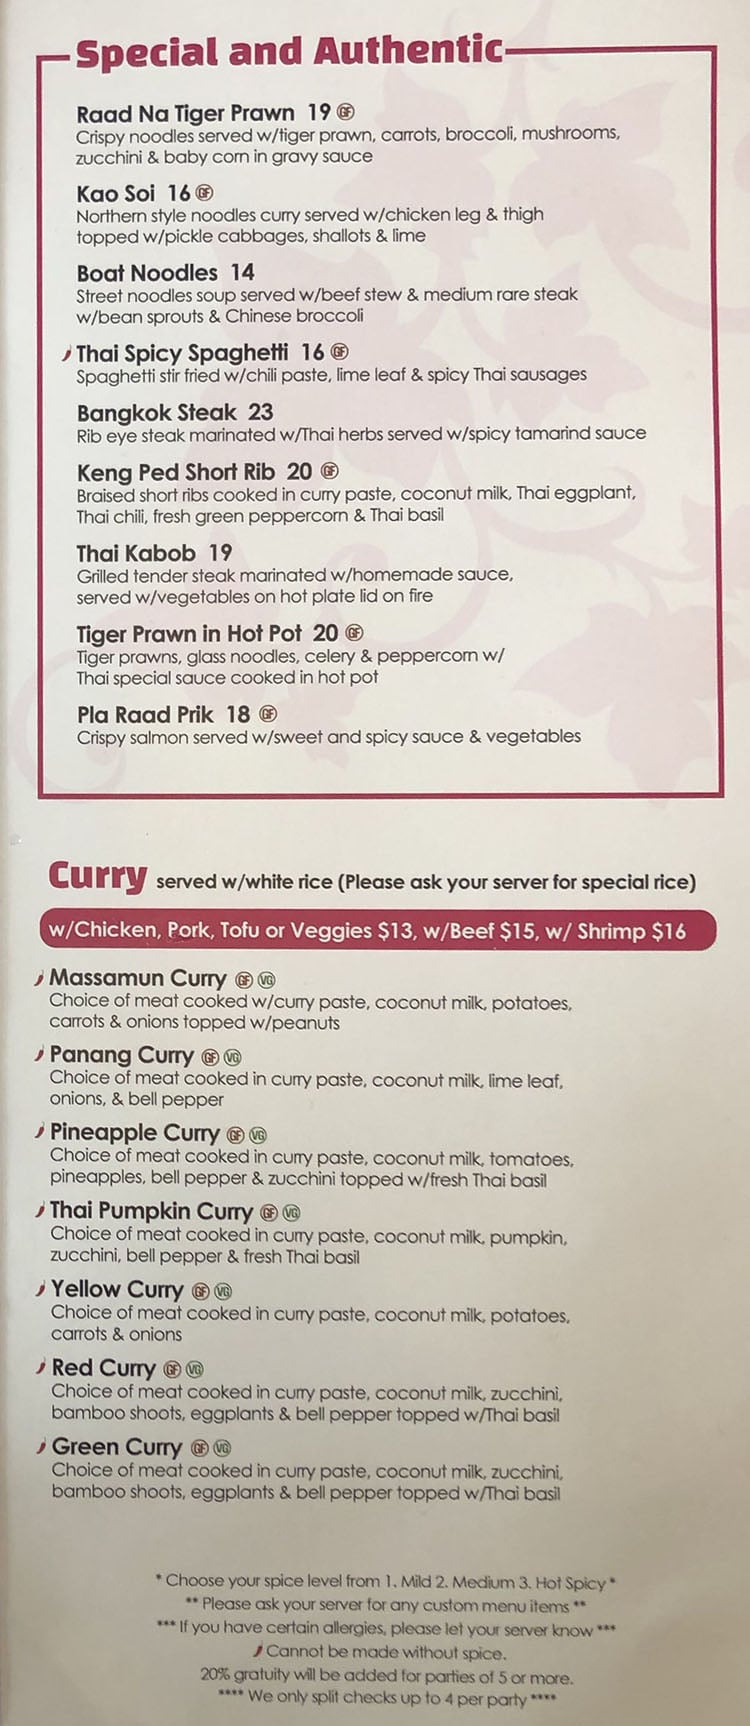 Kao Thai menu - special and authentic, curry